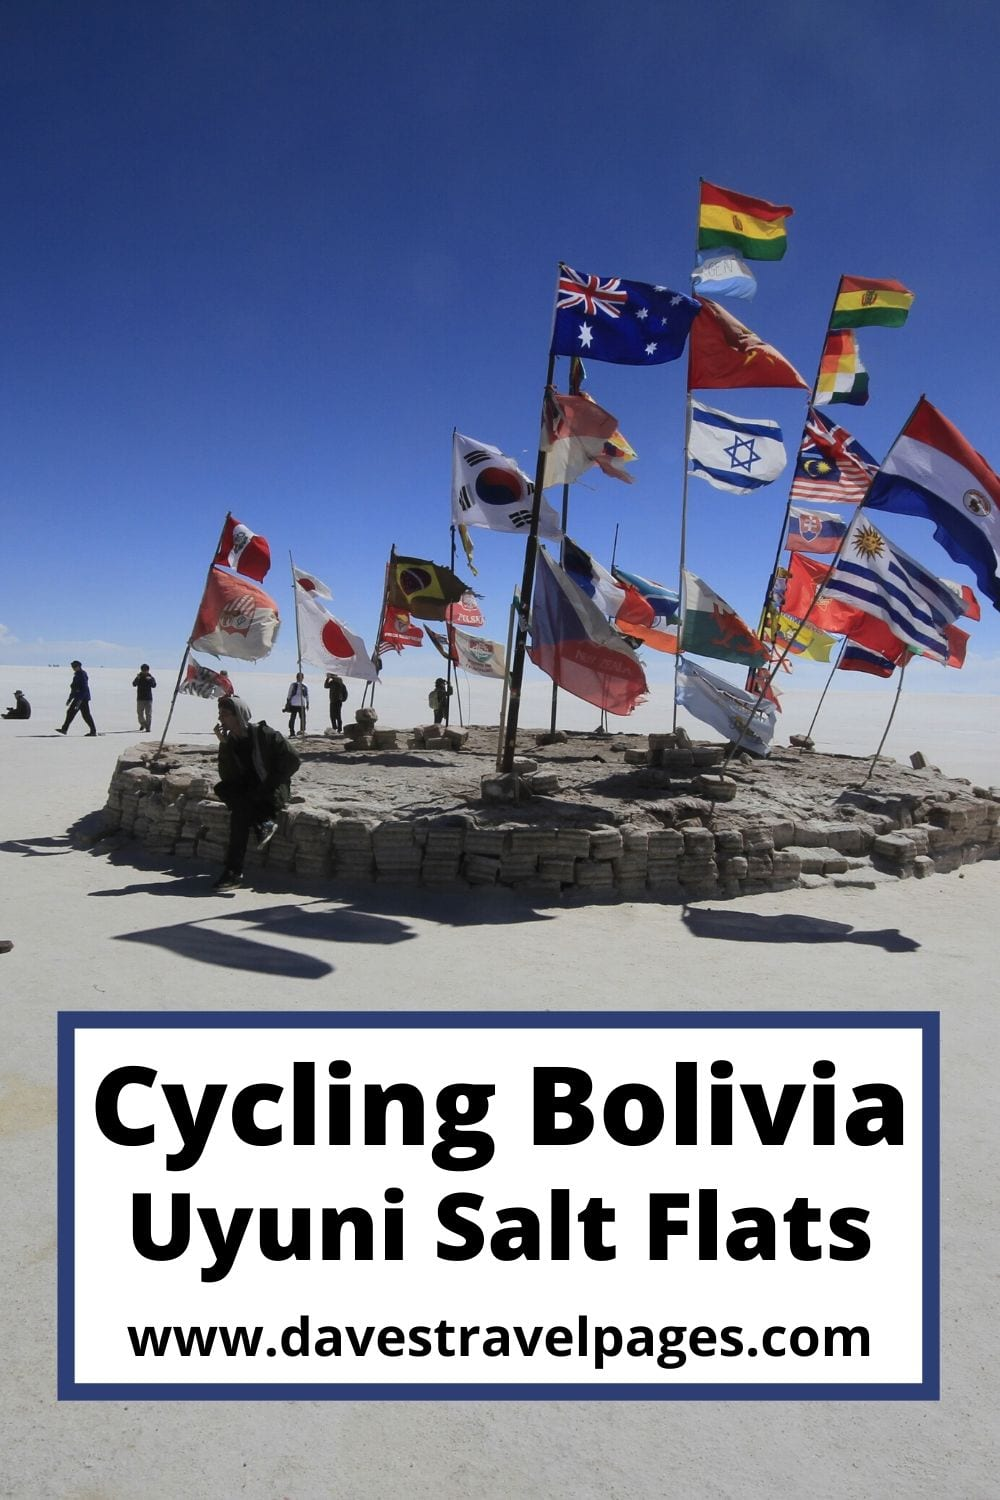 Cycling in Bolivia across the Salt Flats